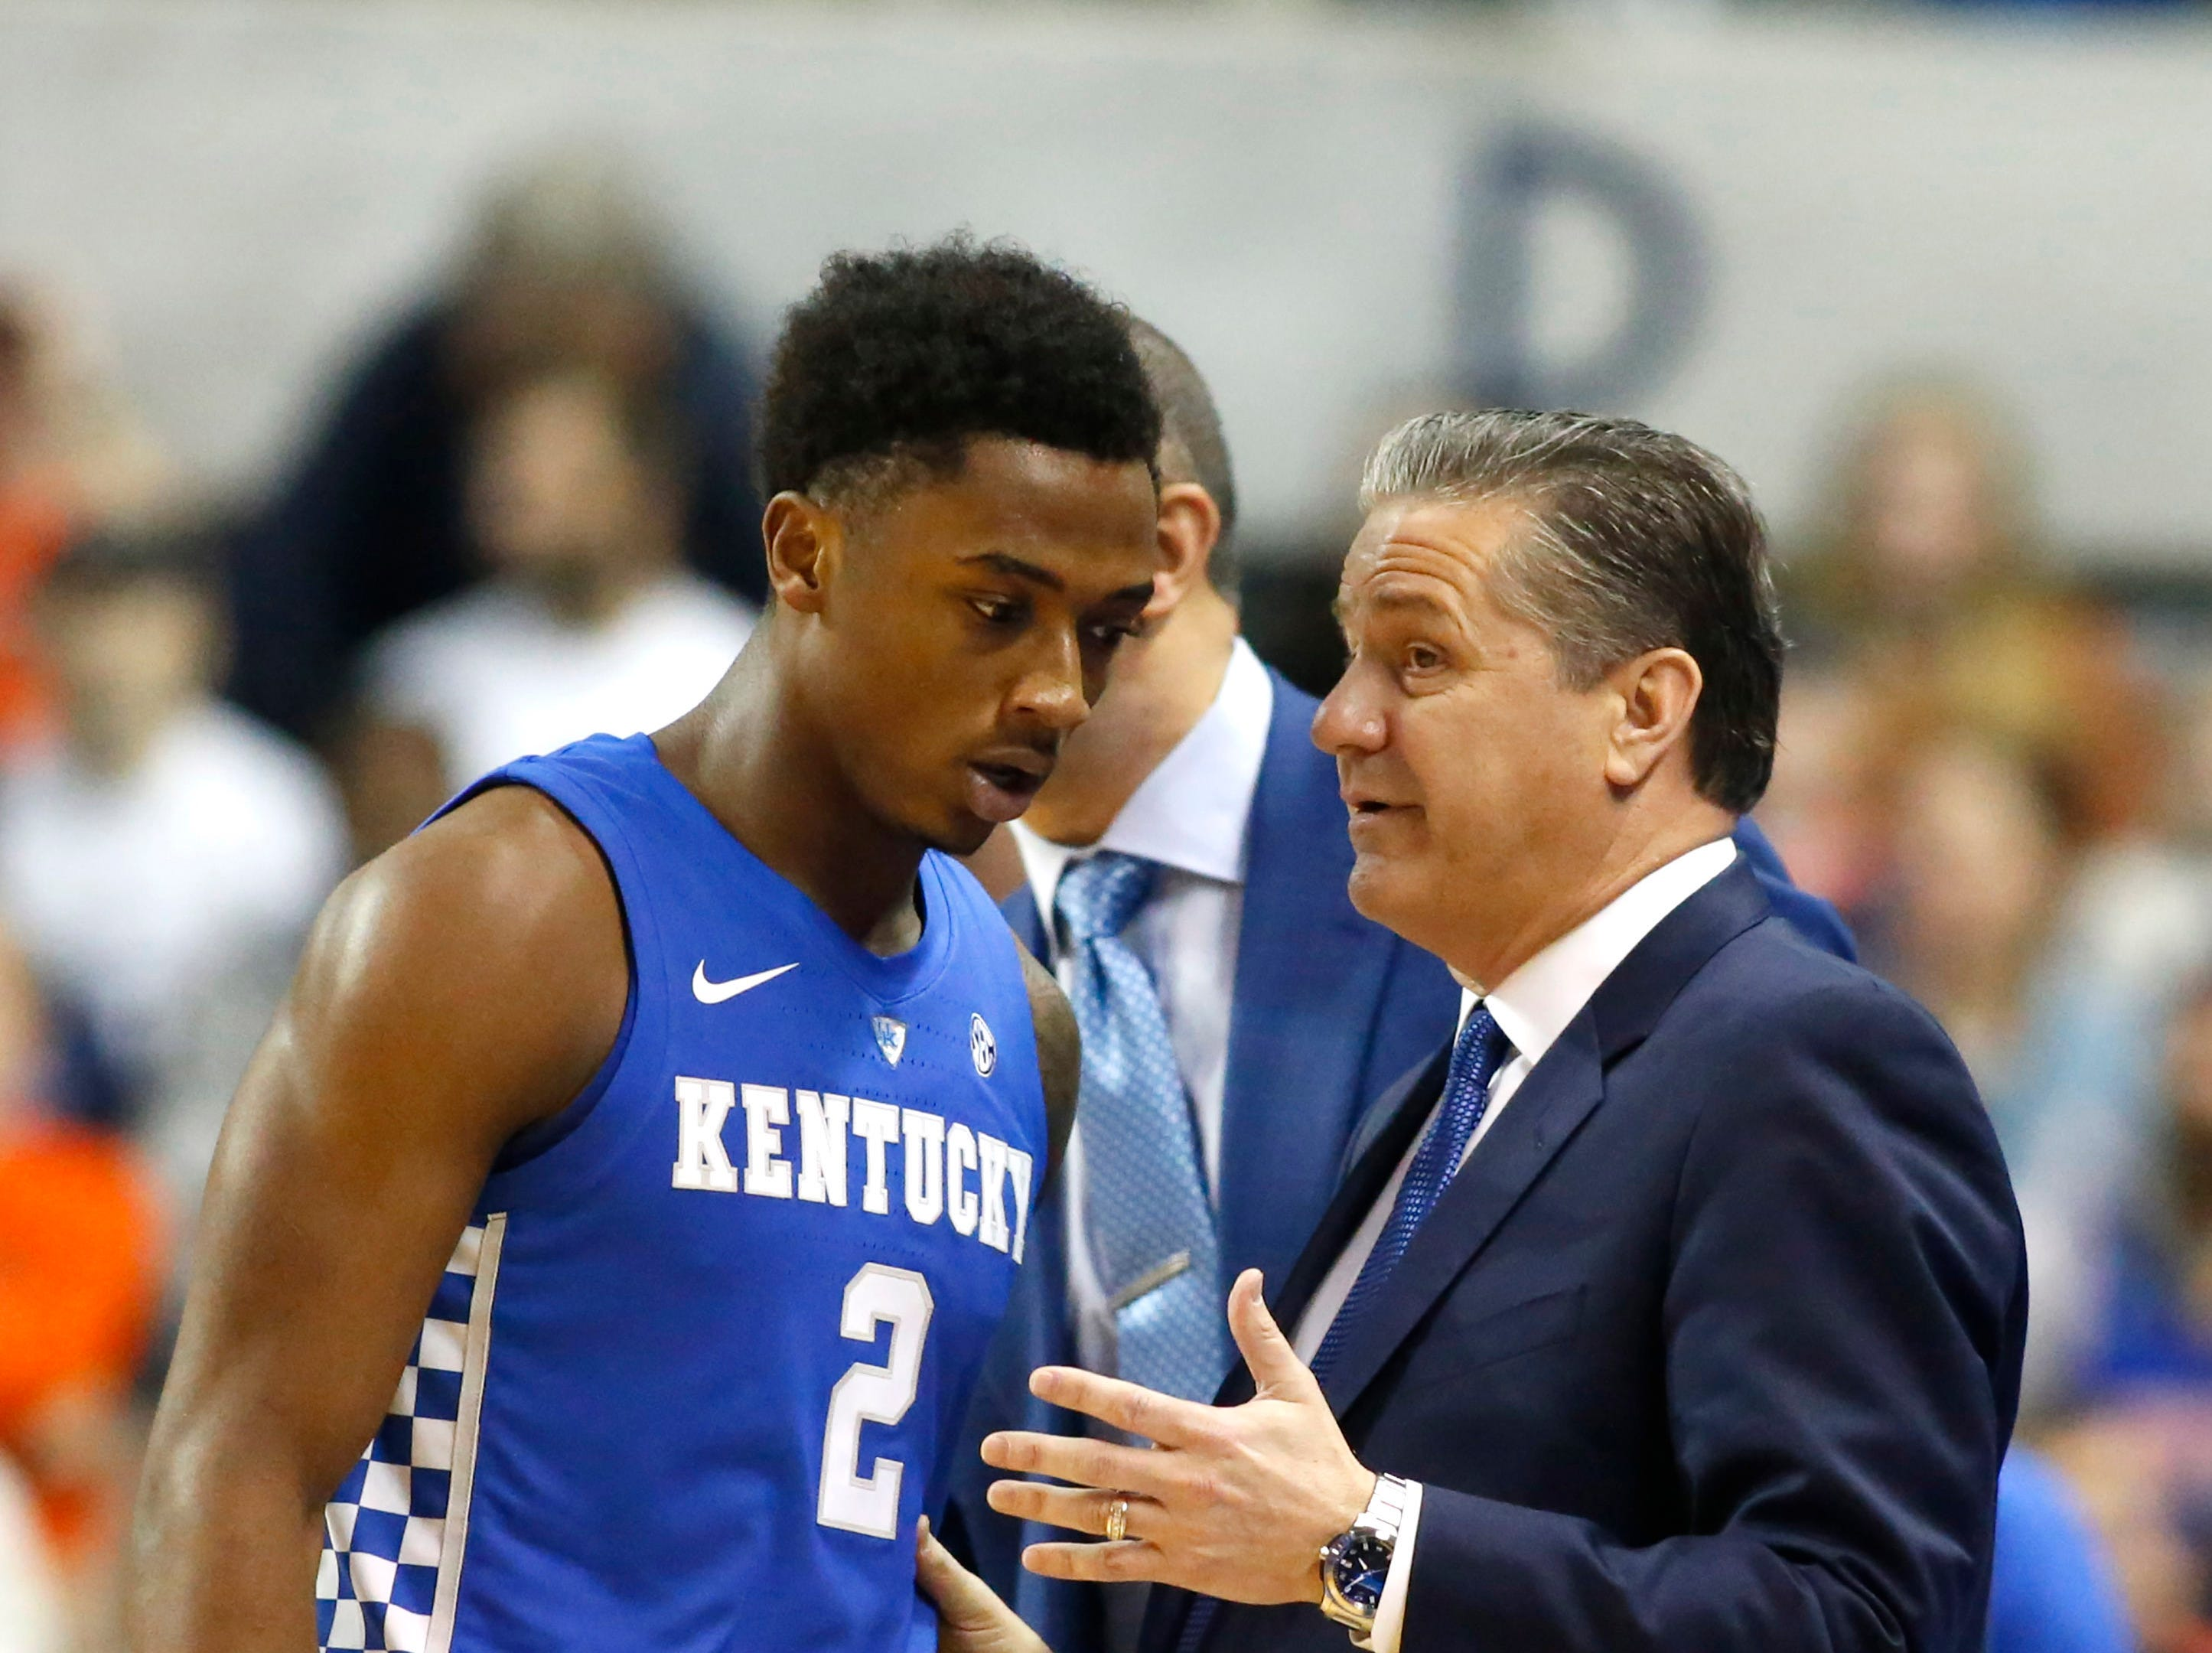 Jan 19, 2019; Auburn, AL, USA; Kentucky Wildcats guard Ashton Hagans (2) talks with coach John Calipari during the first half against the Auburn Tigers at Auburn Arena. Mandatory Credit: John Reed-USA TODAY Sports